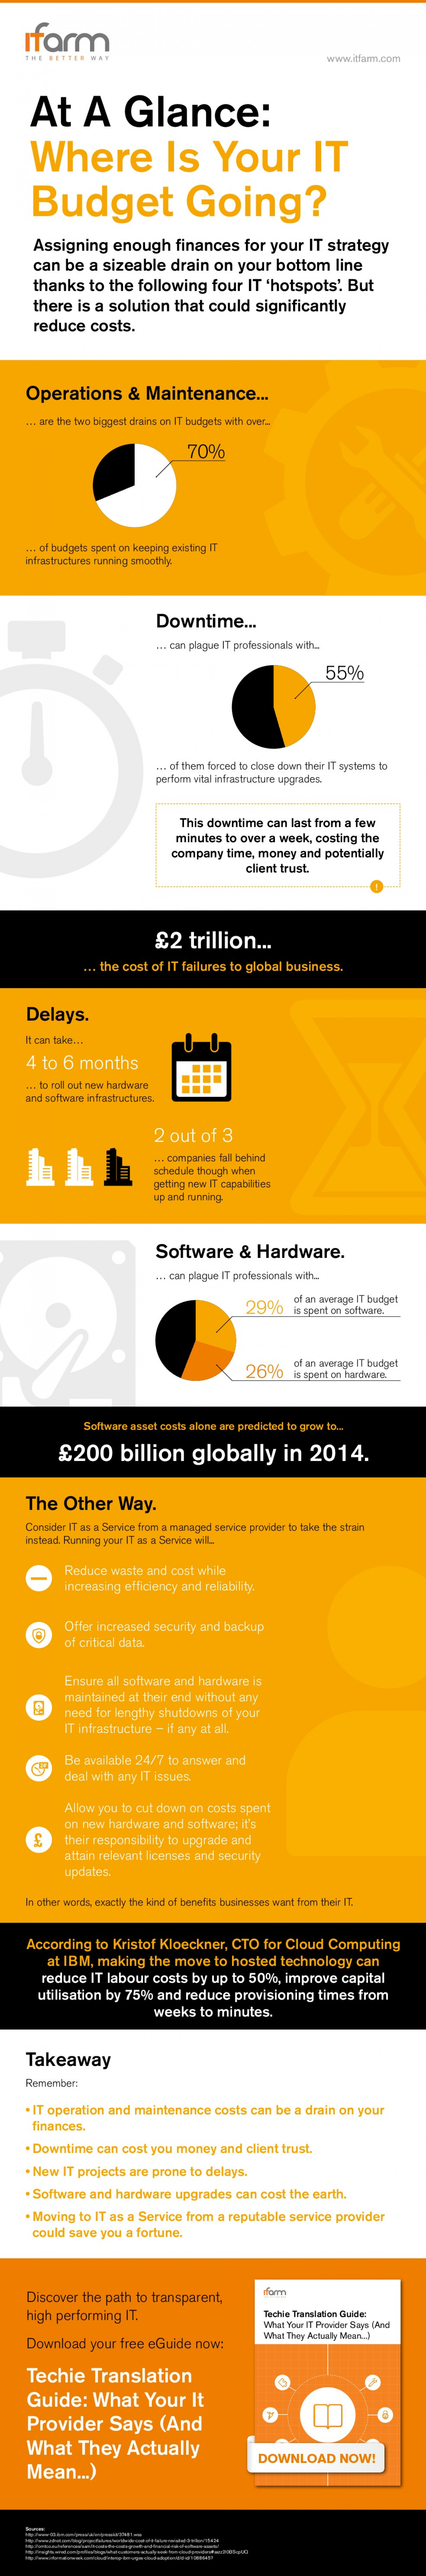 At a Glance: Where Is Your IT Budget Going? Infographic